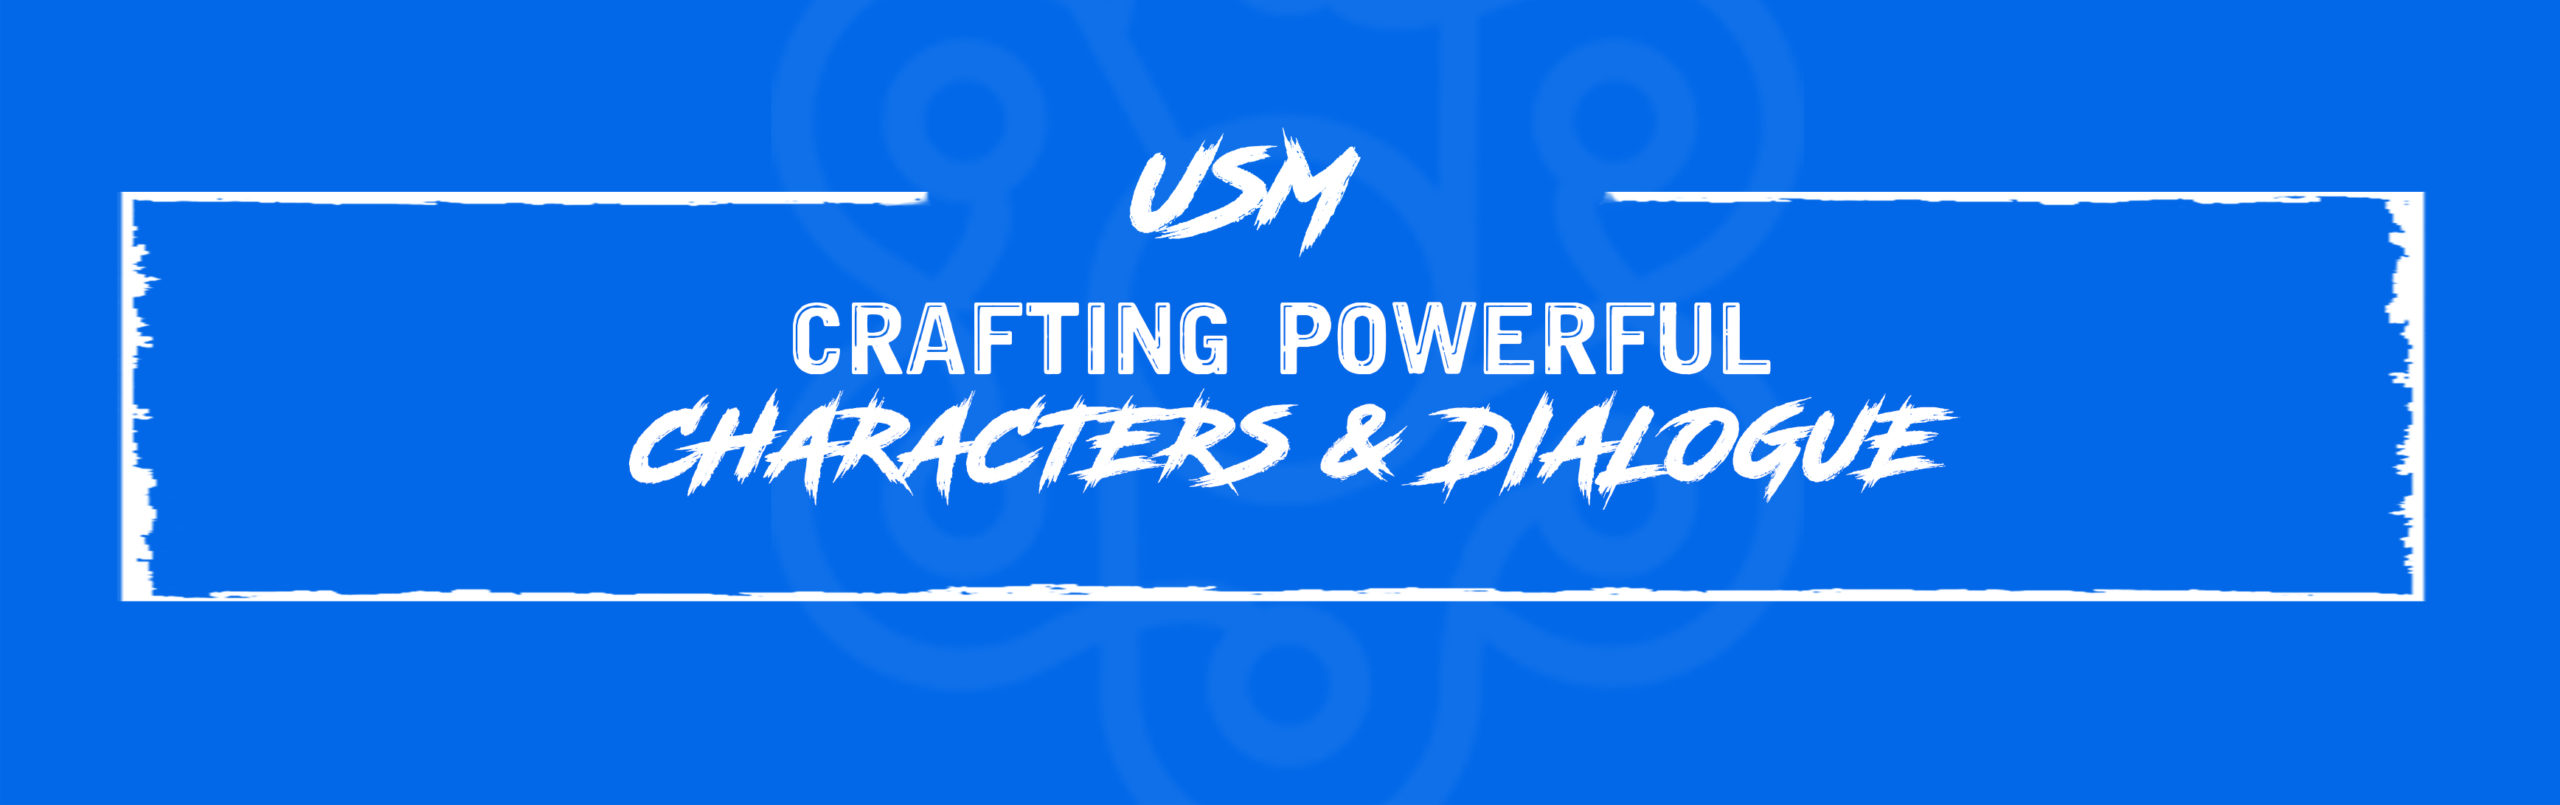 crafting powerful characters screenwriting course